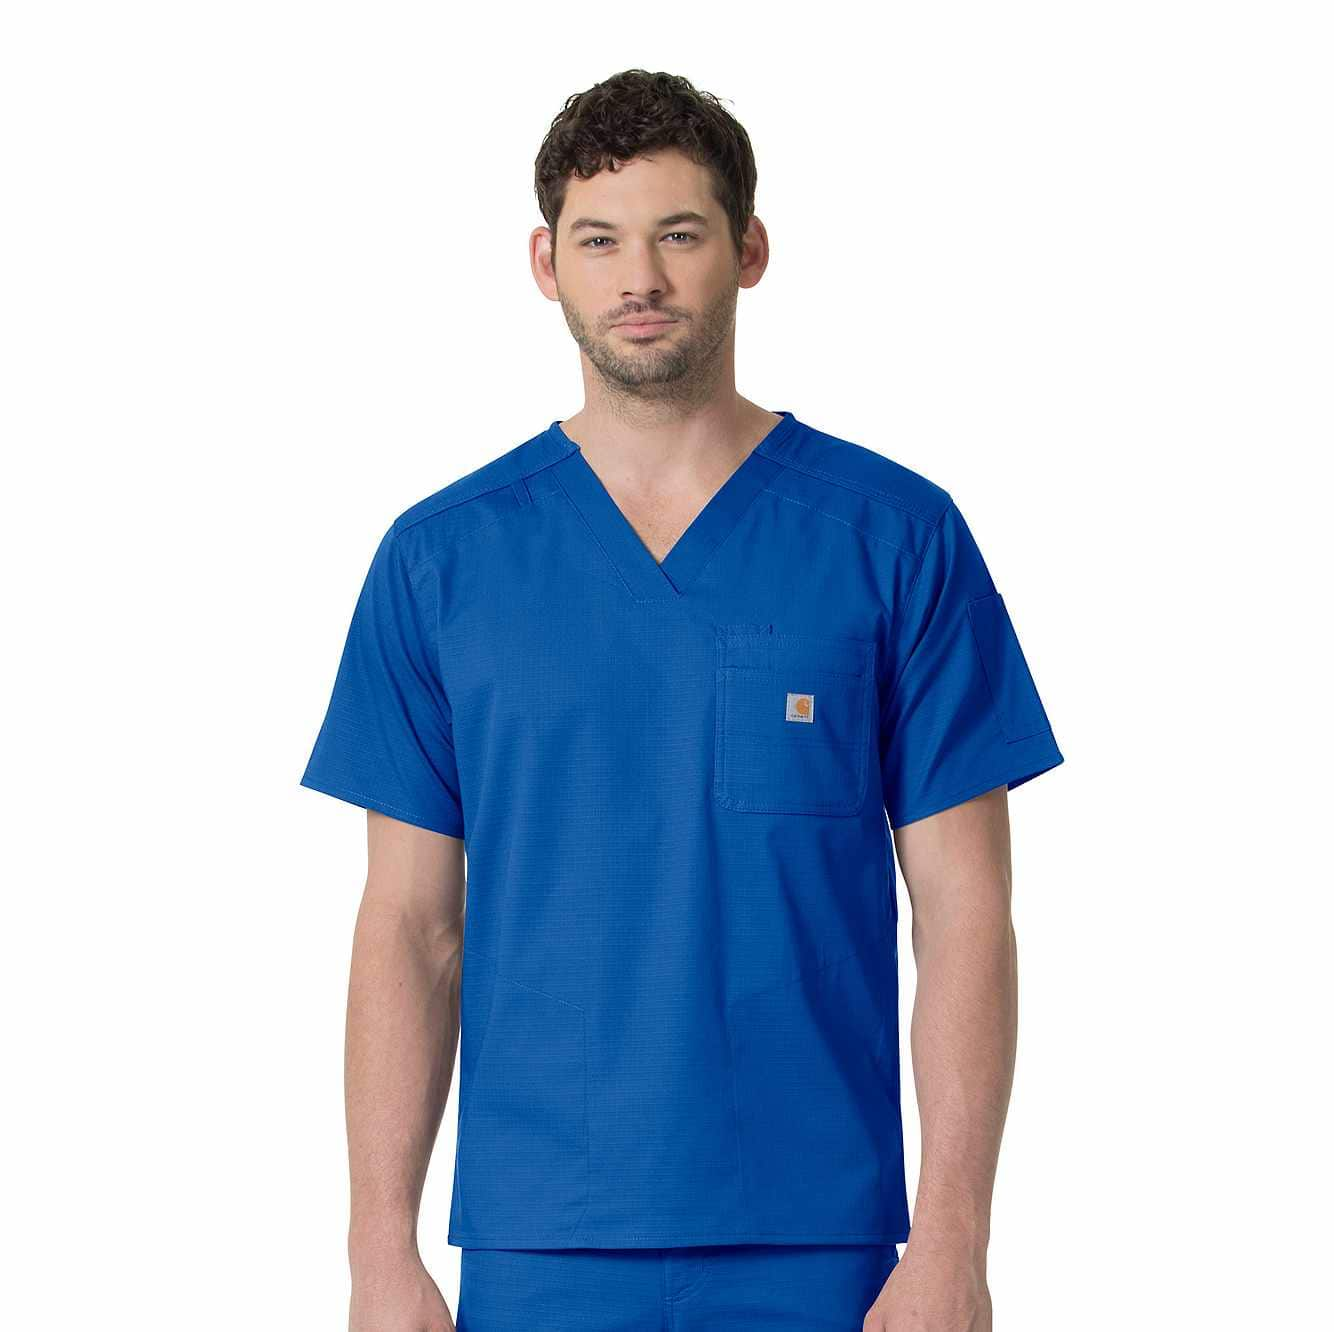 Picture of SLIM FIT SIX POCKET V-NECK SCRUB TOP in Royal